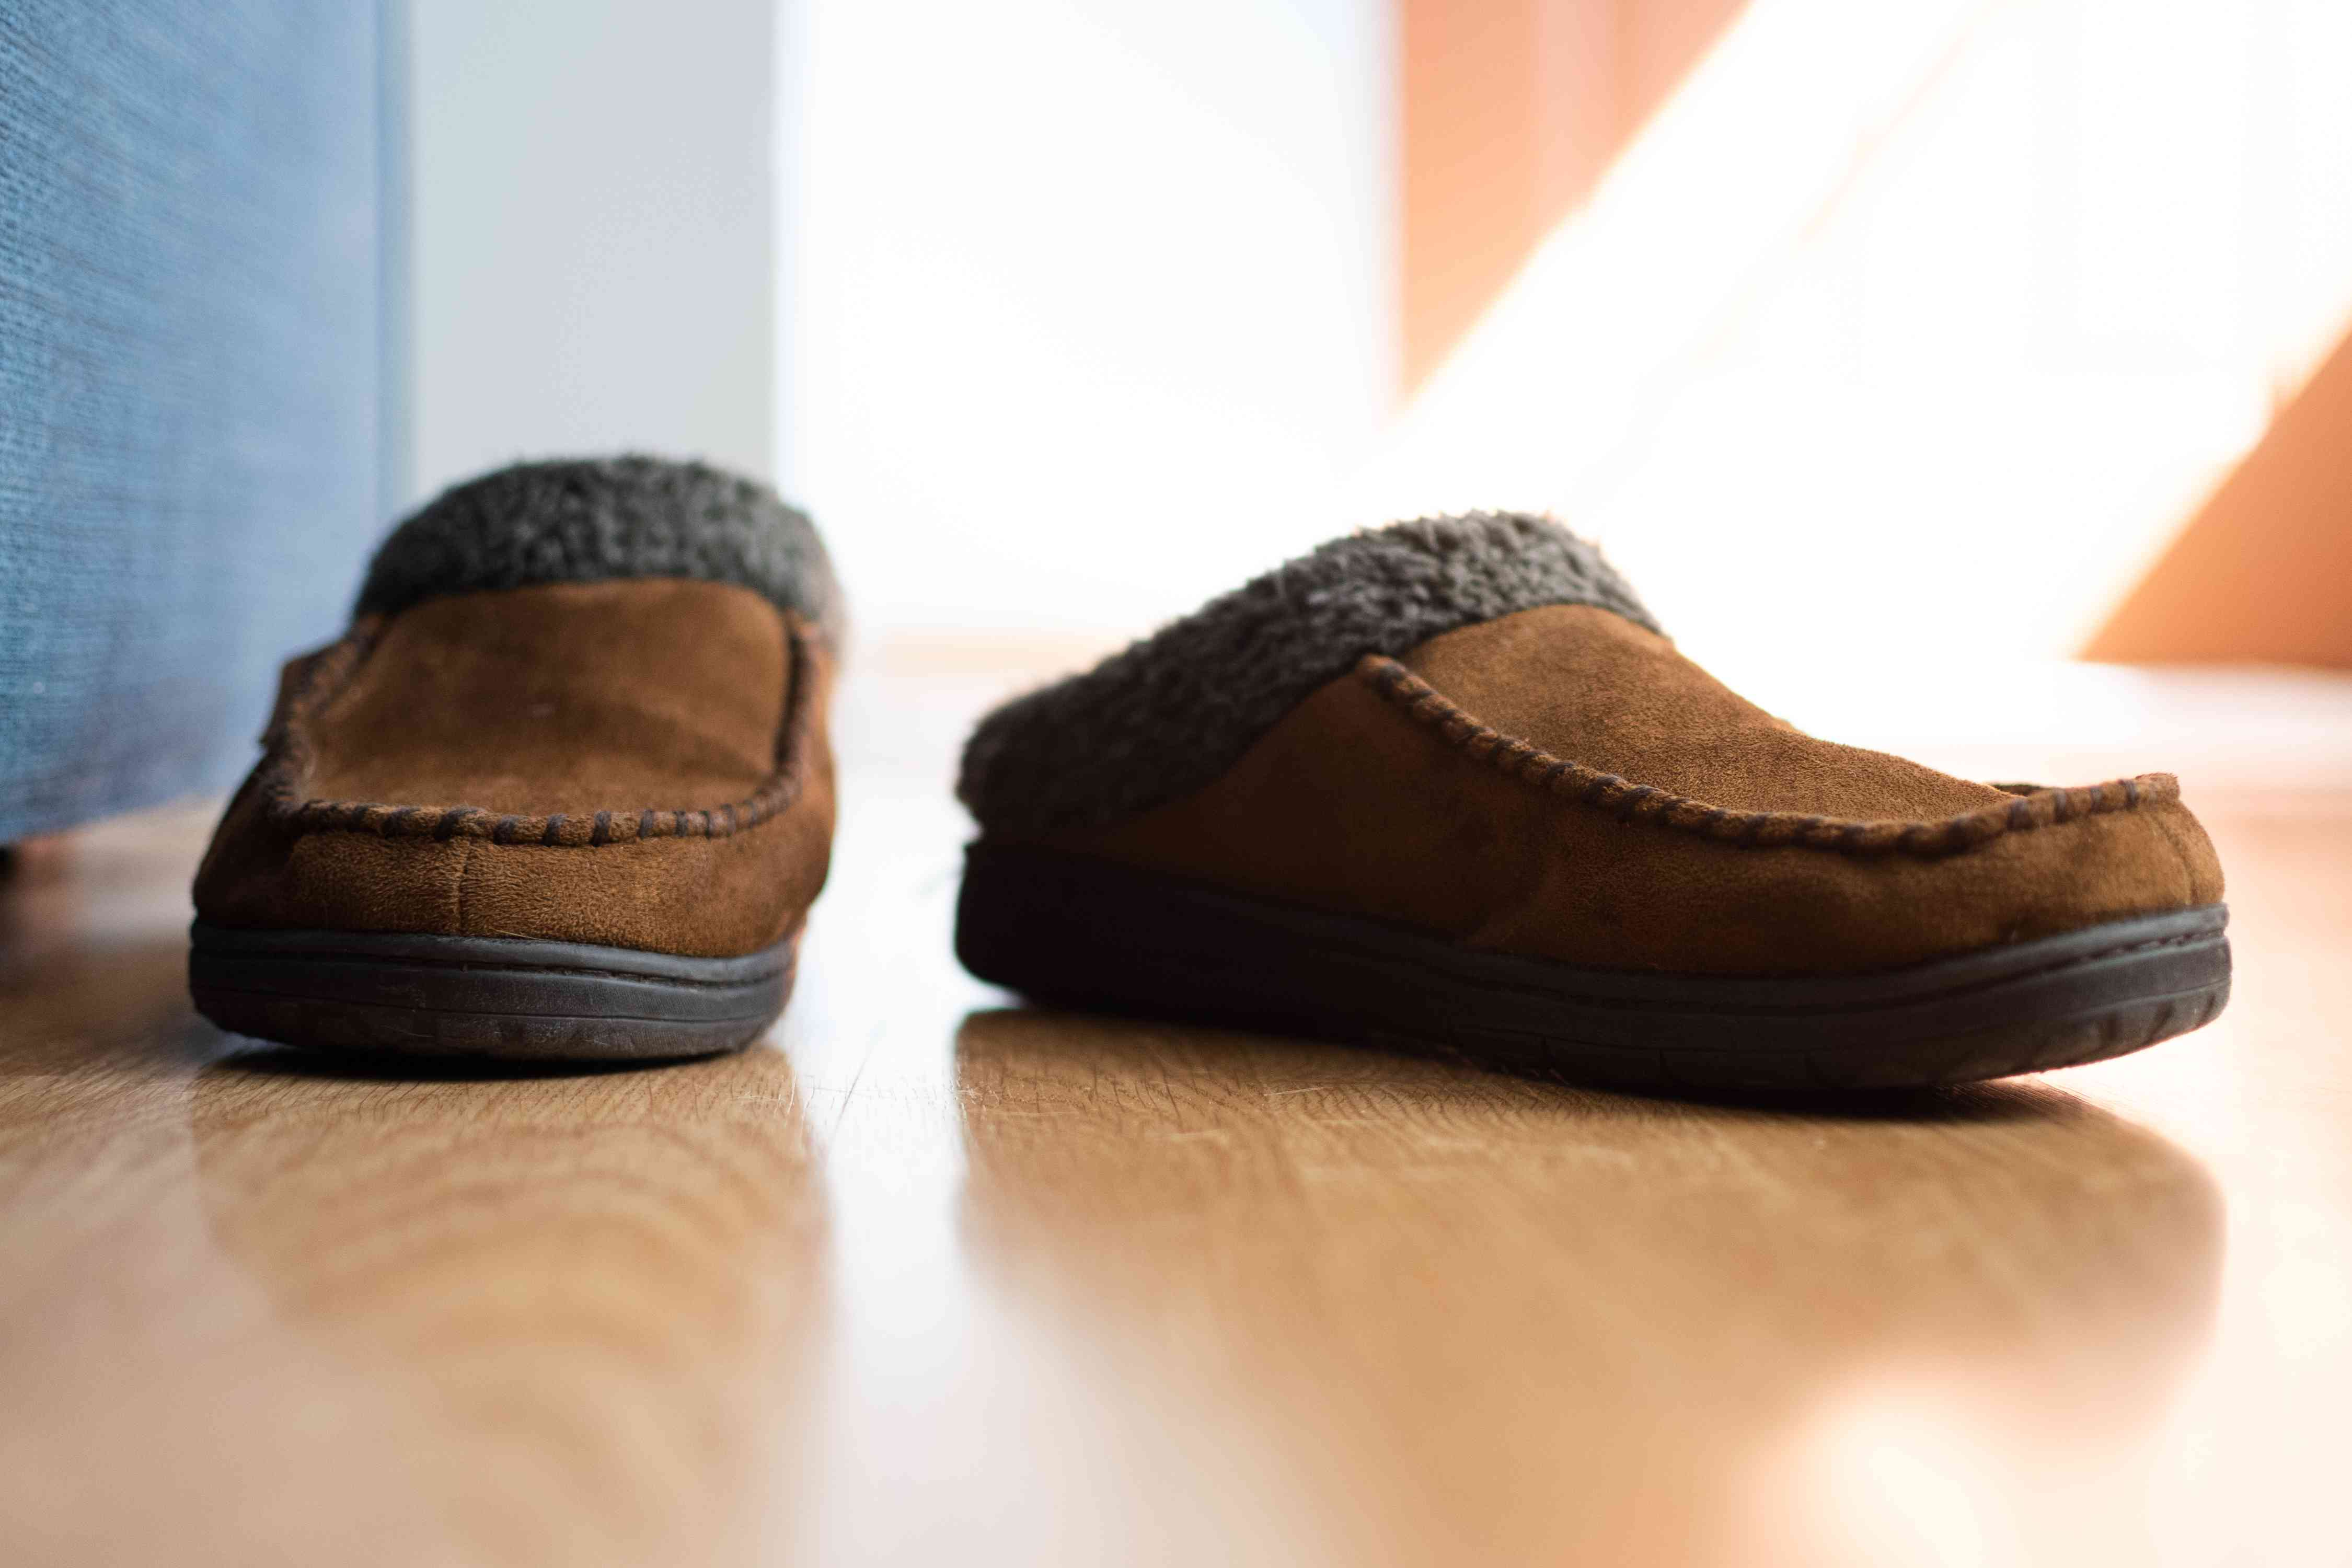 Brown slippers with faux fur to keep warm